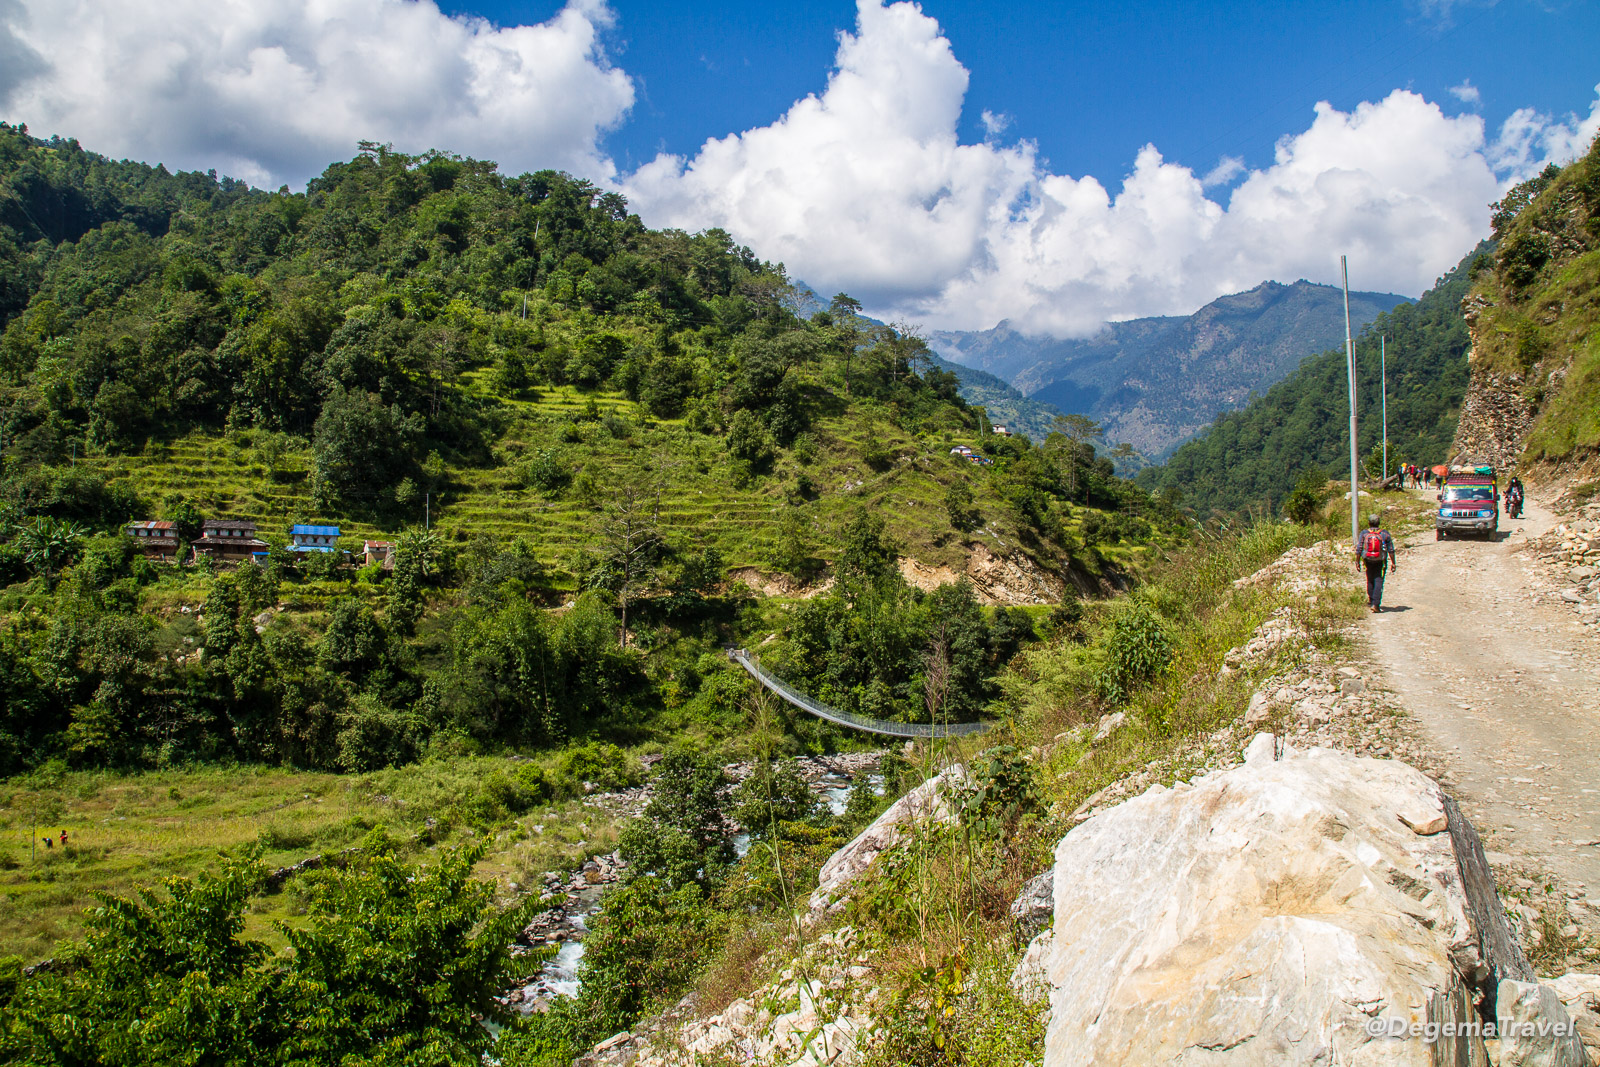 The Bhurungdi valley in the Annapurna Conservation Area, Nepal